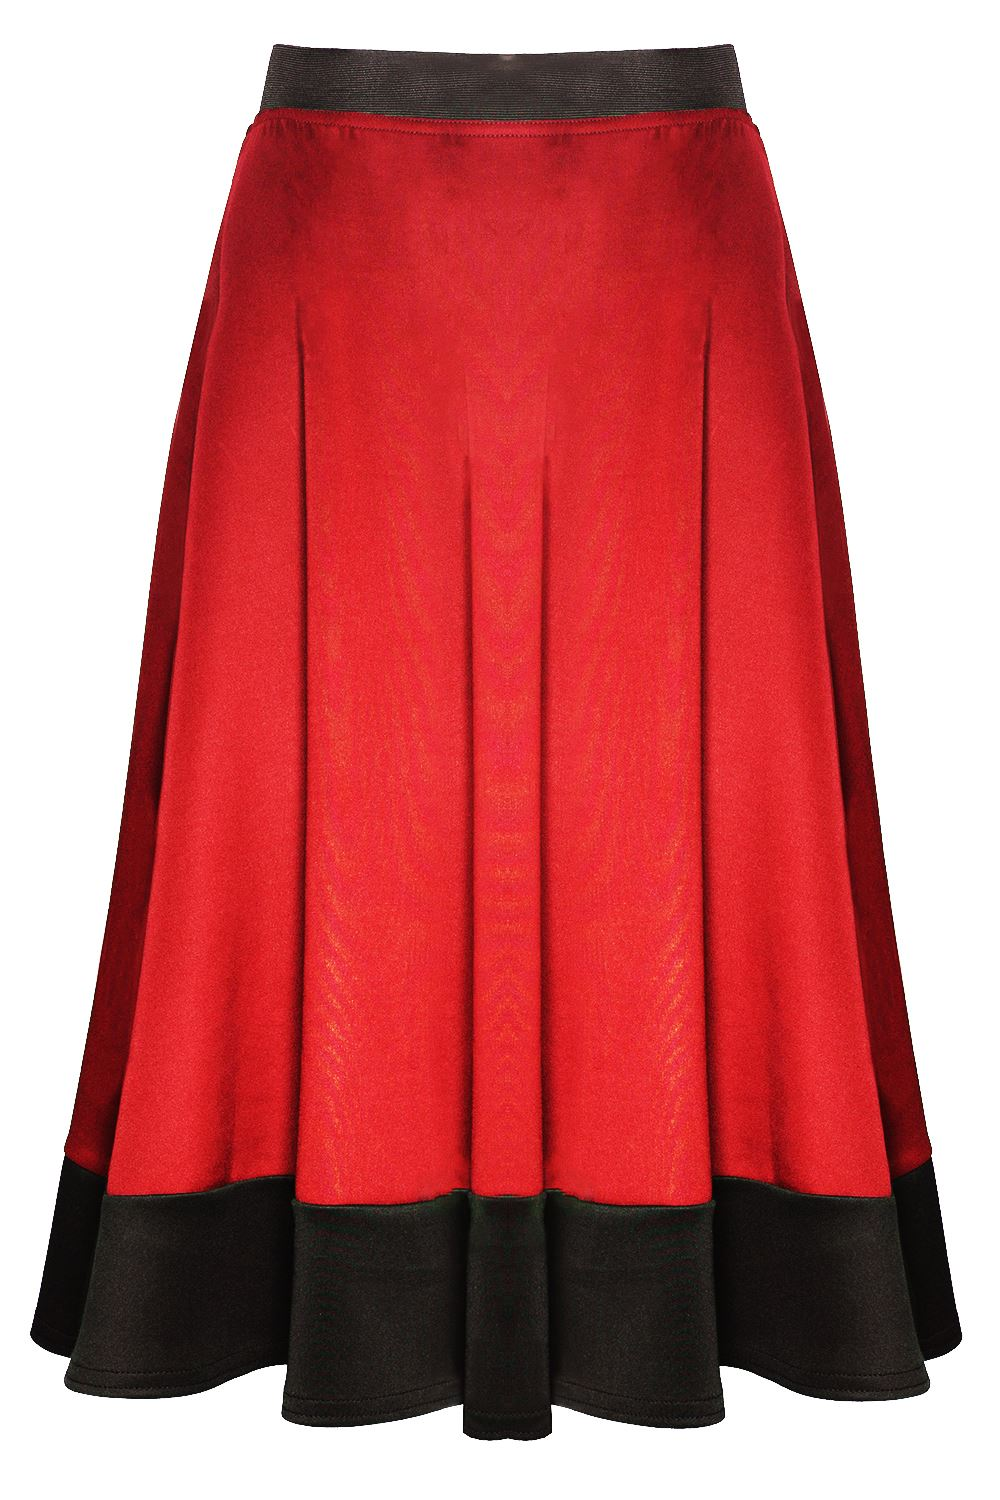 The new trend for mid-calf length skirts is dividing the fashion world Last updated at 05 August The midi - a skirt with a hemline mid calf - is a trend that is provoking stong opinions.